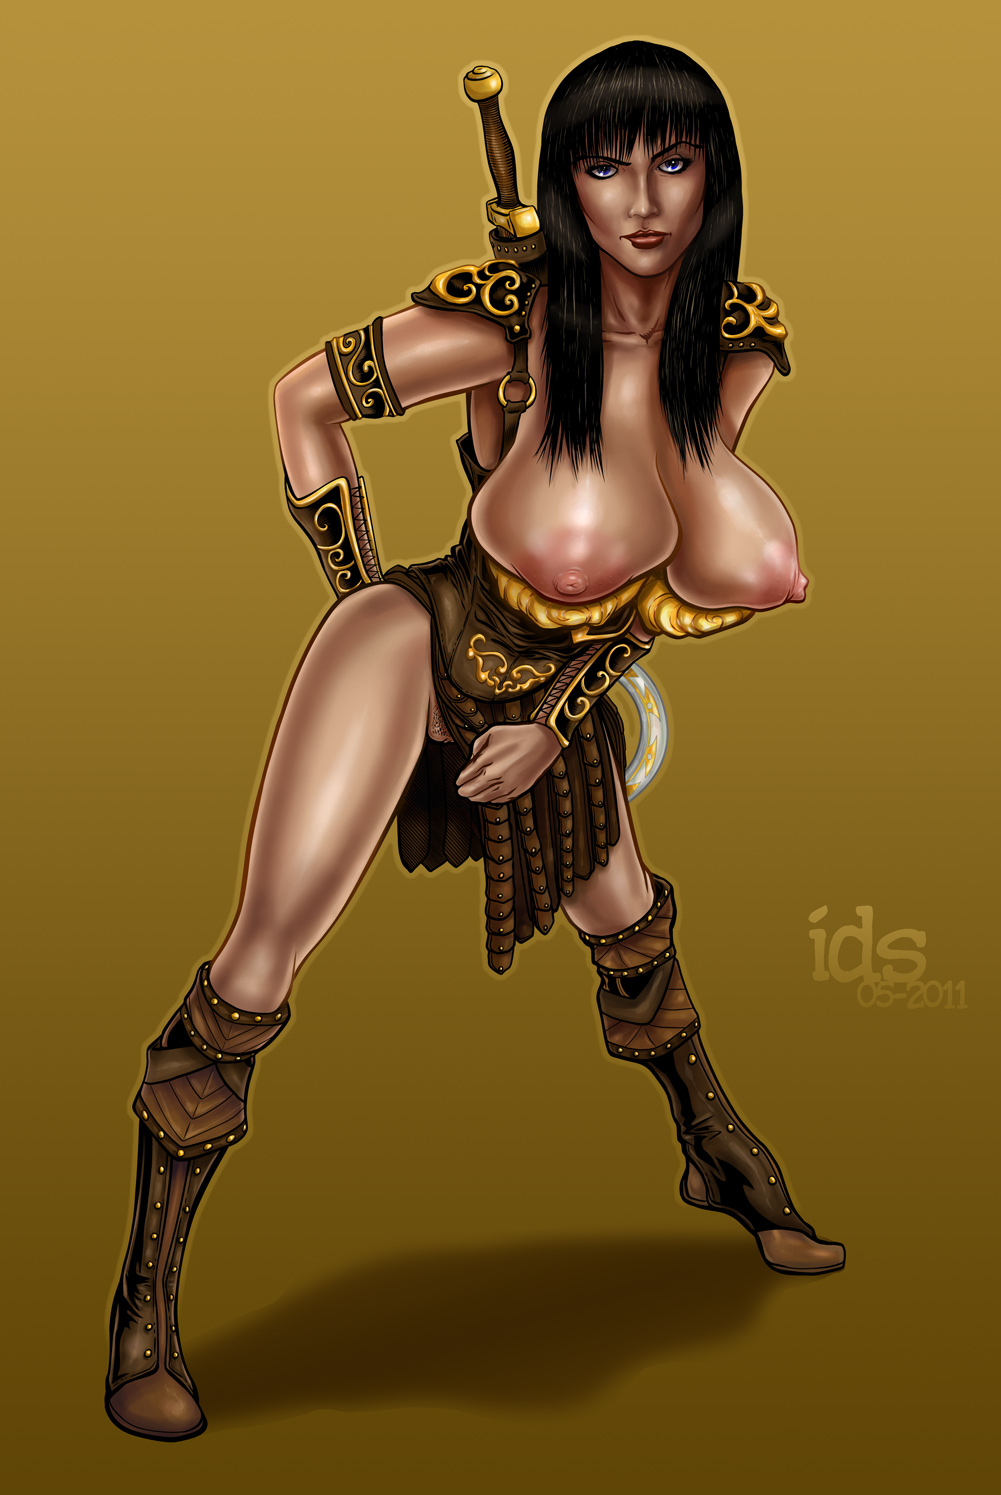 Xena the princess erotic pron photo